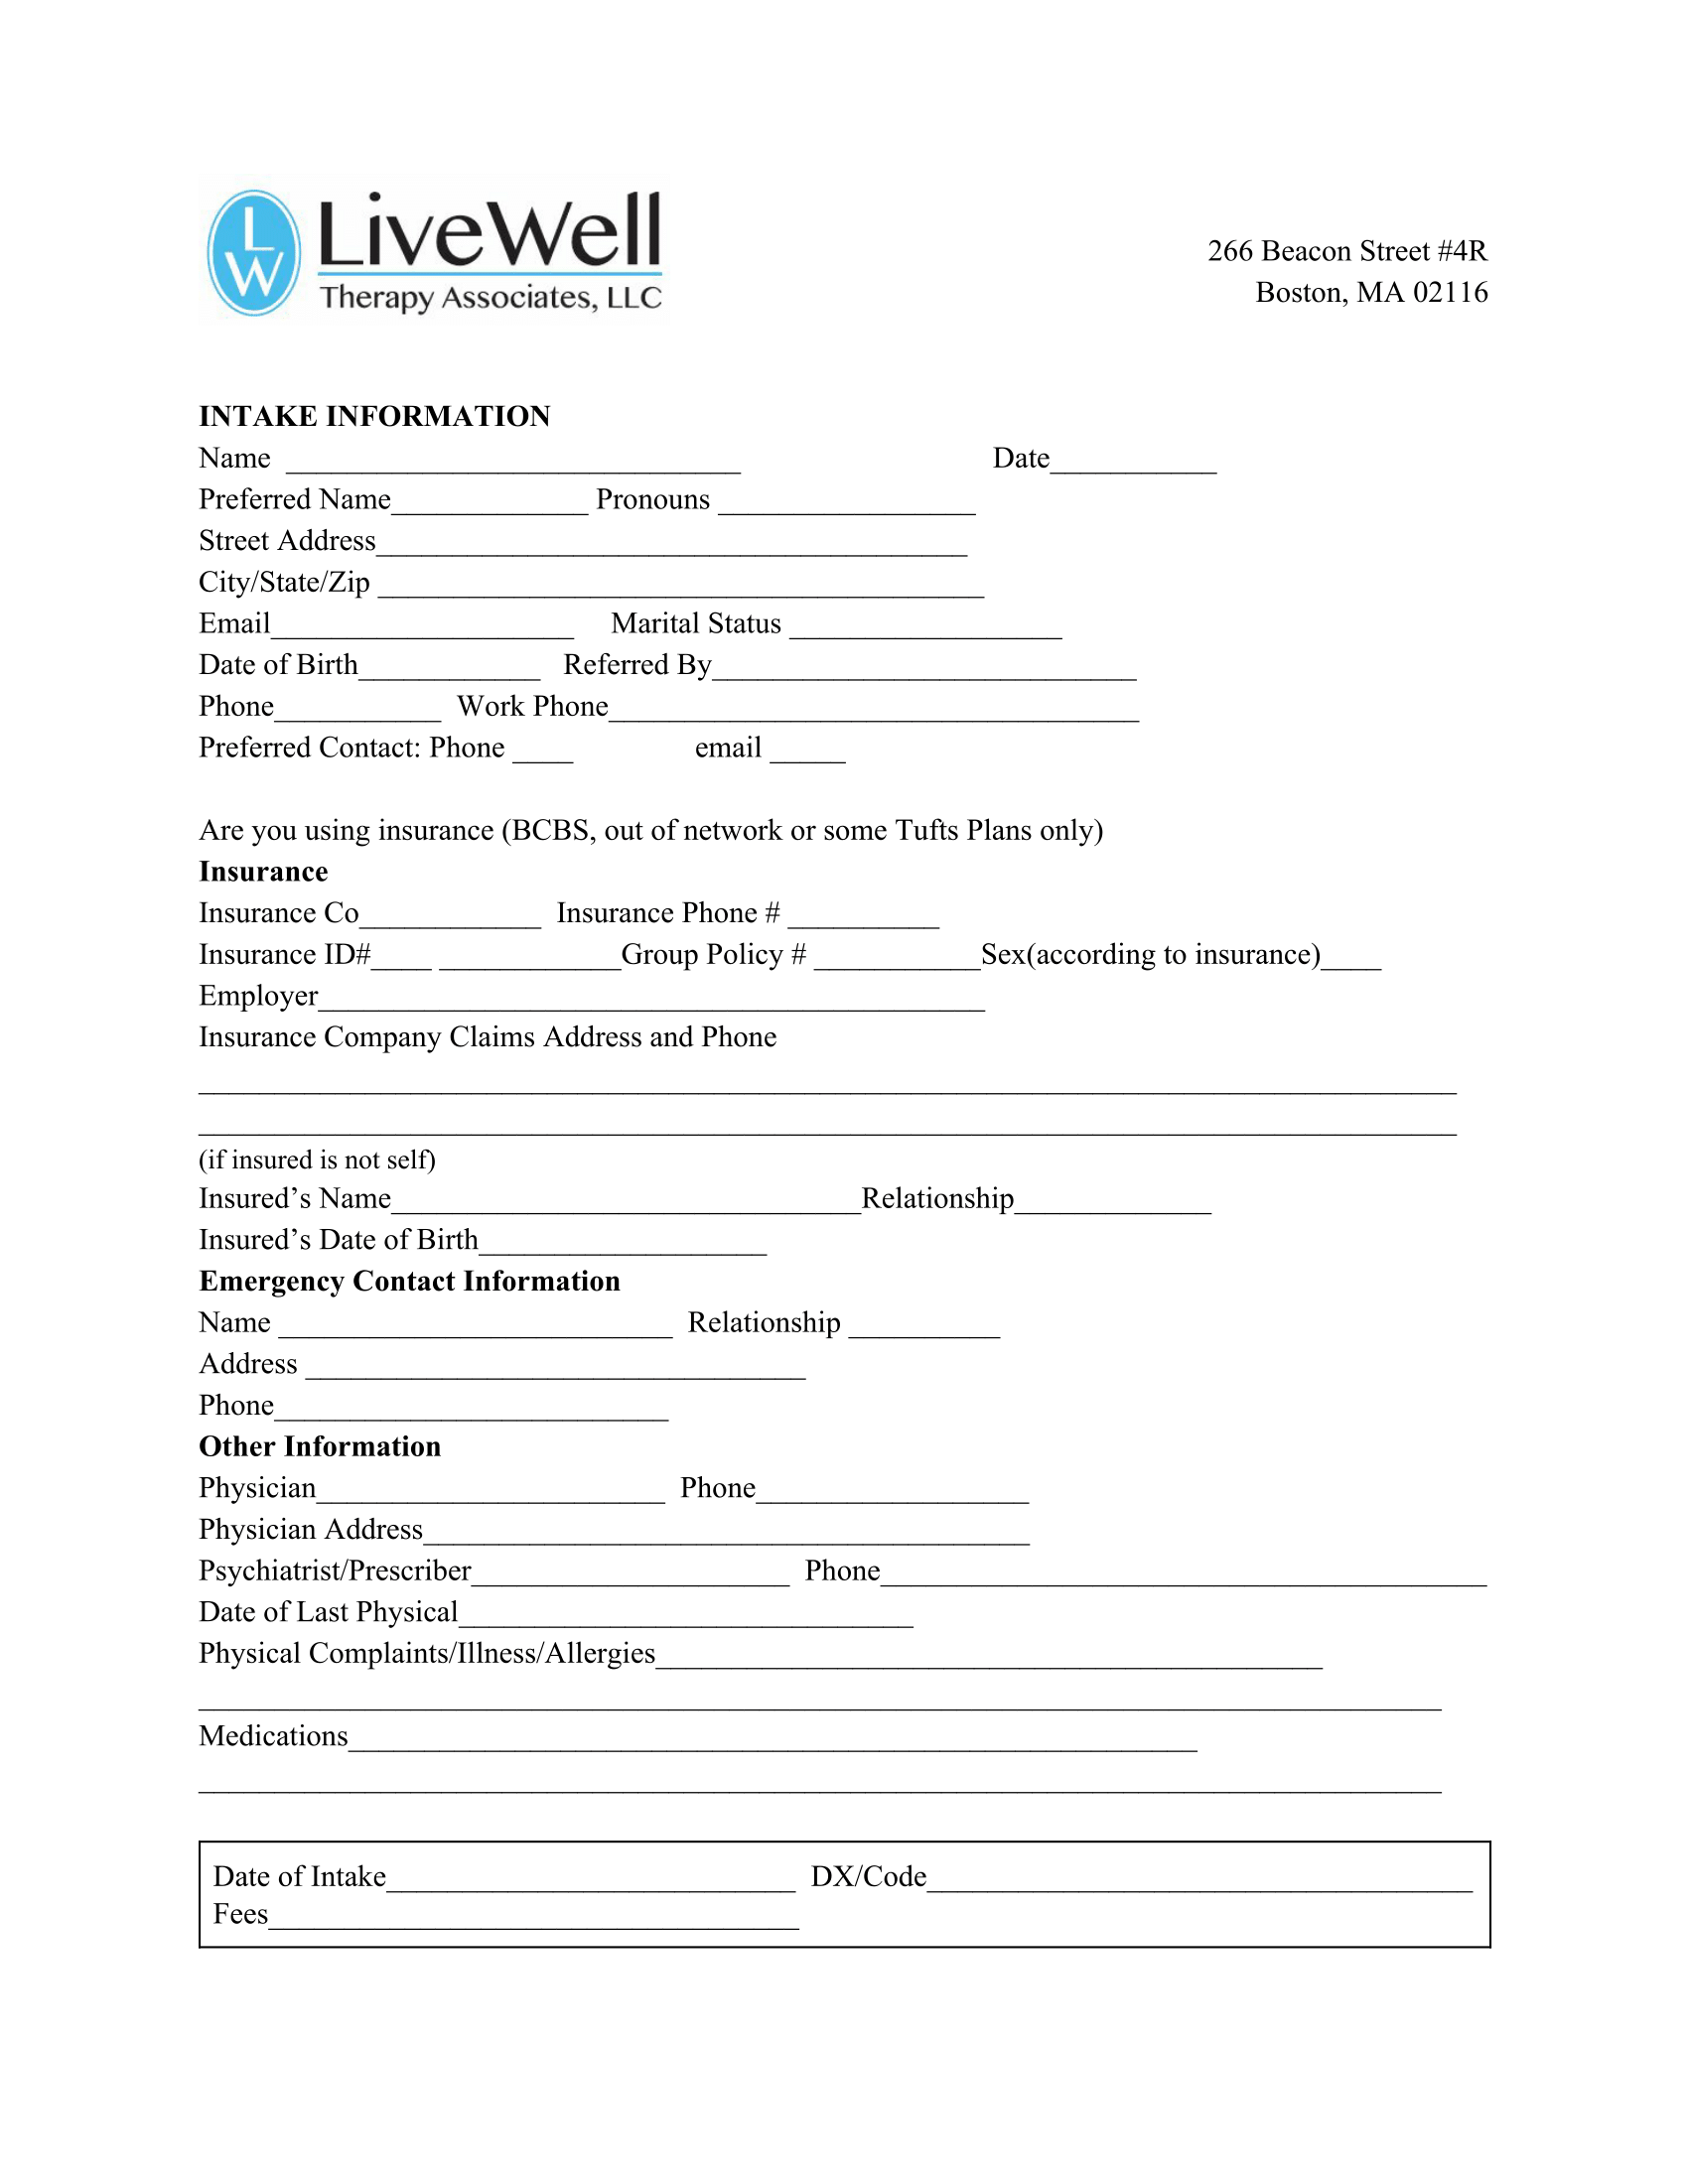 INTAKE Forms/POLICIES -